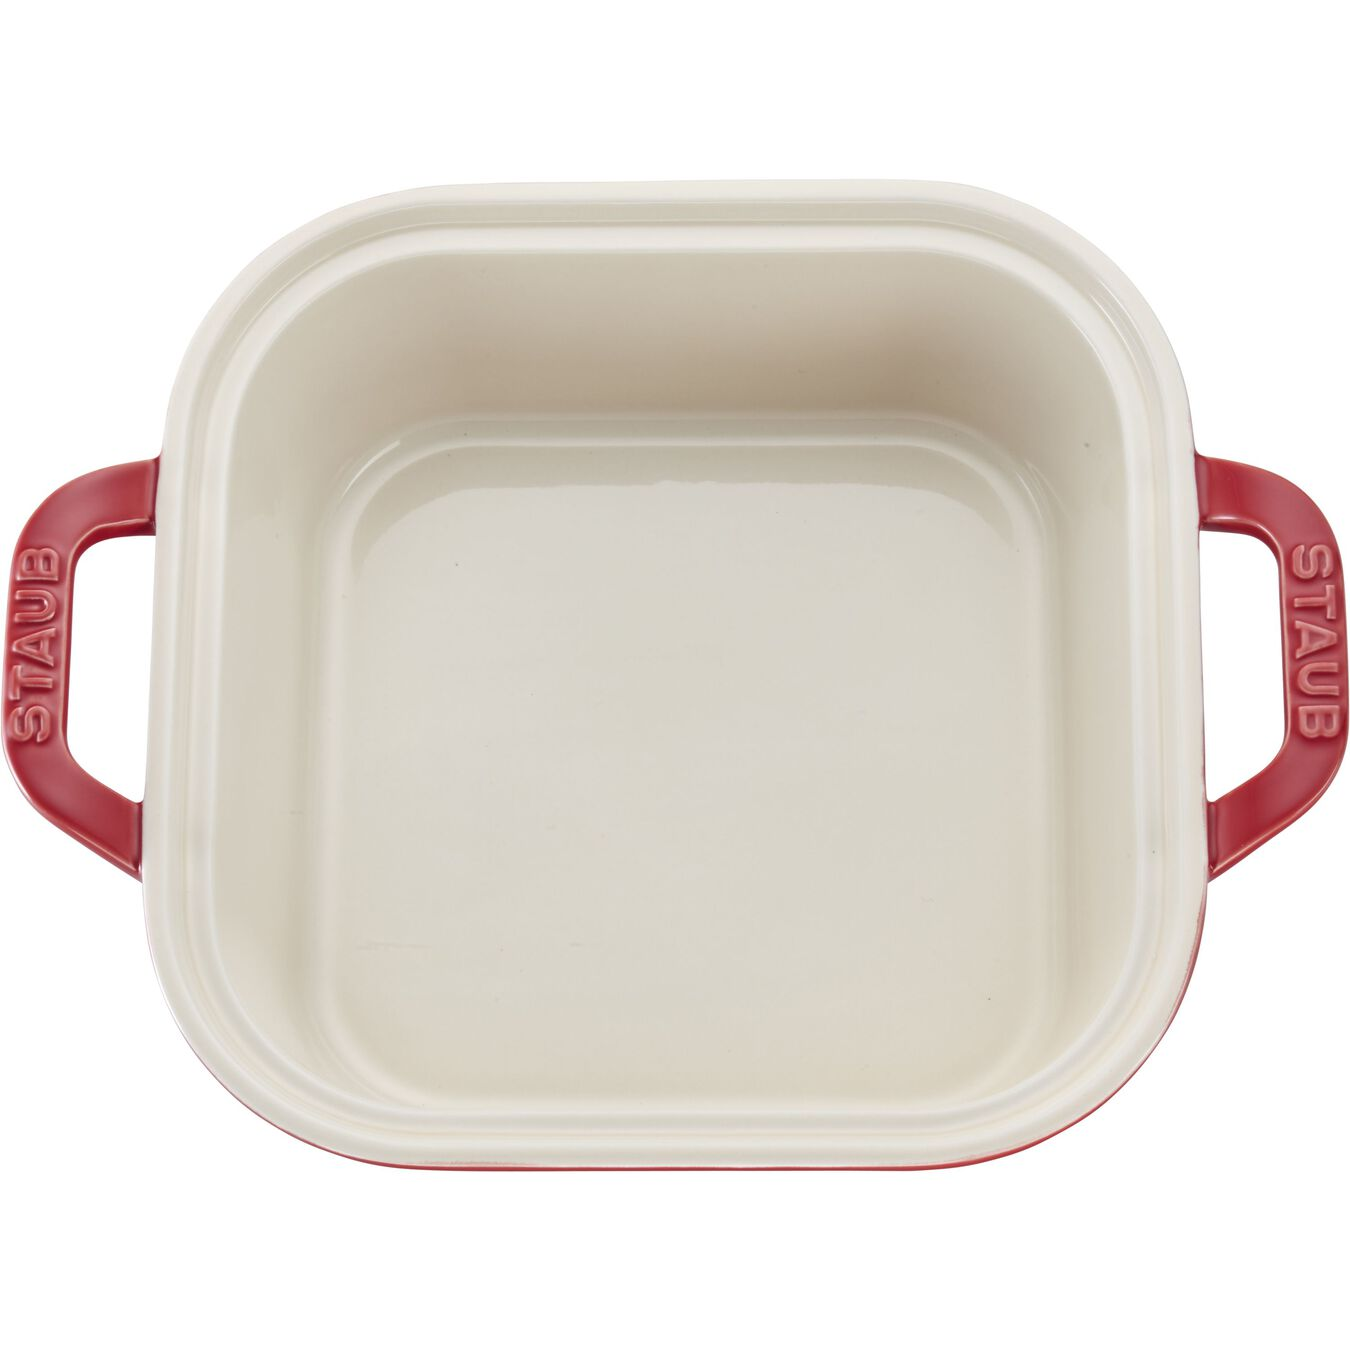 9-inch, square, Special shape bakeware, cherry,,large 6